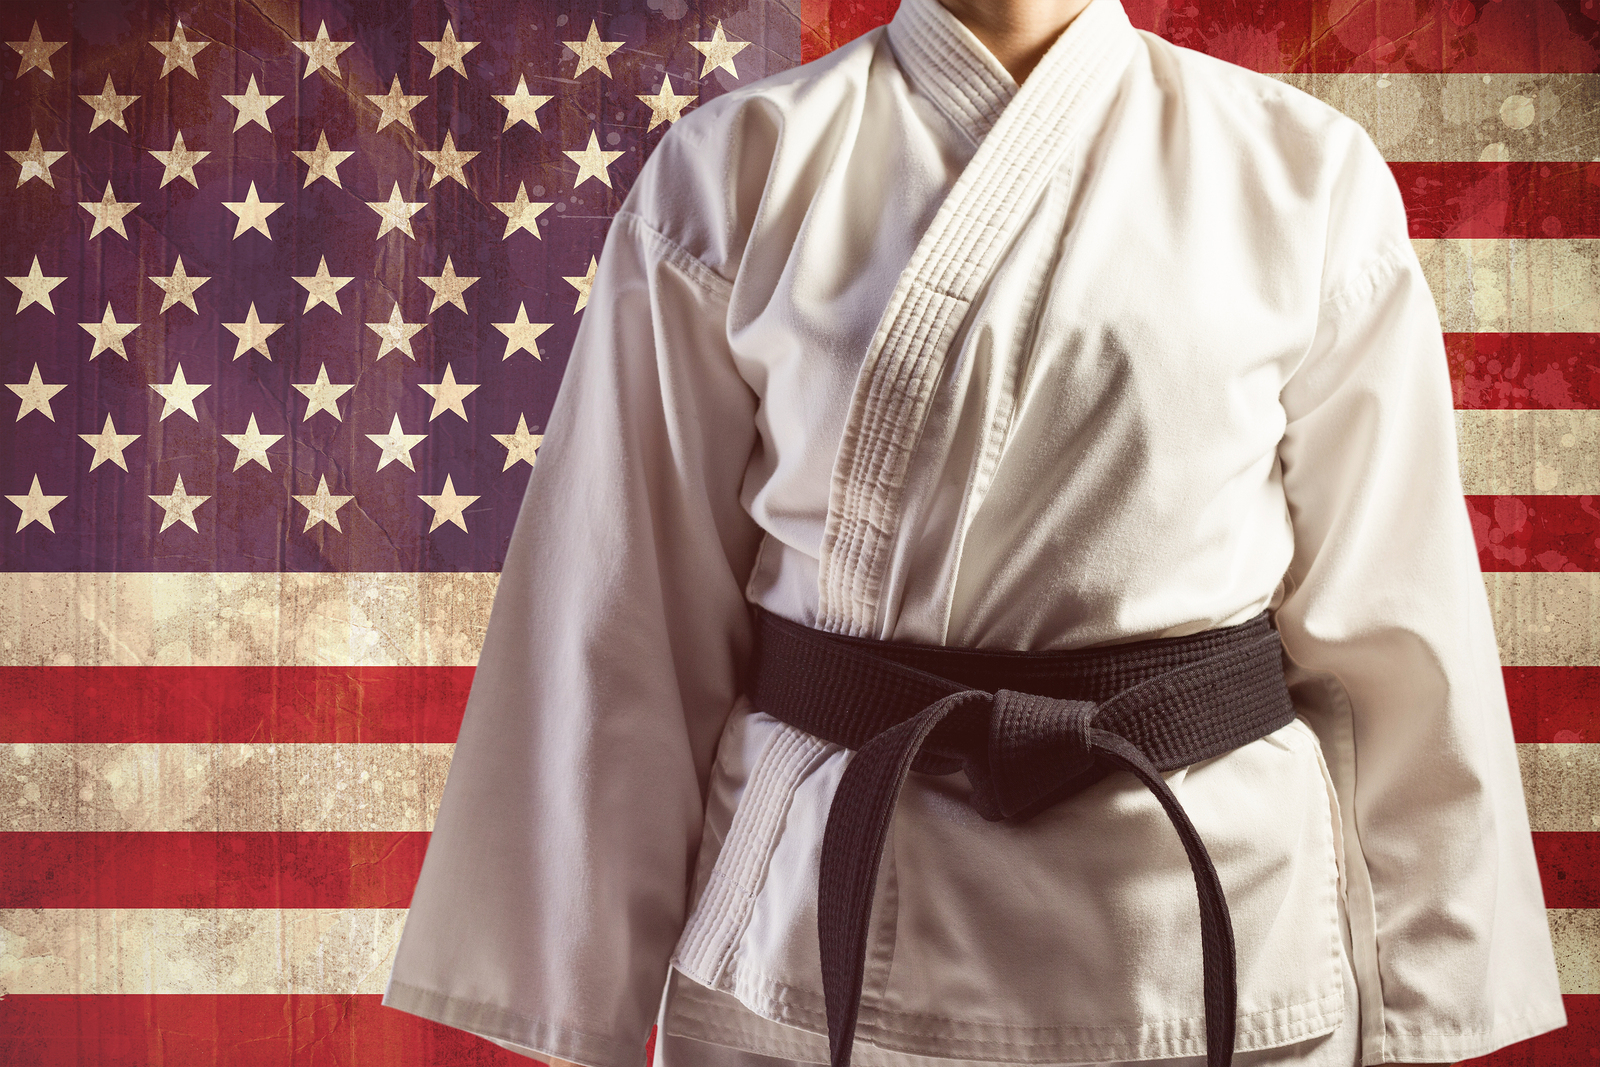 Gracie Raleigh Self Defense Martial Arts Mma And More